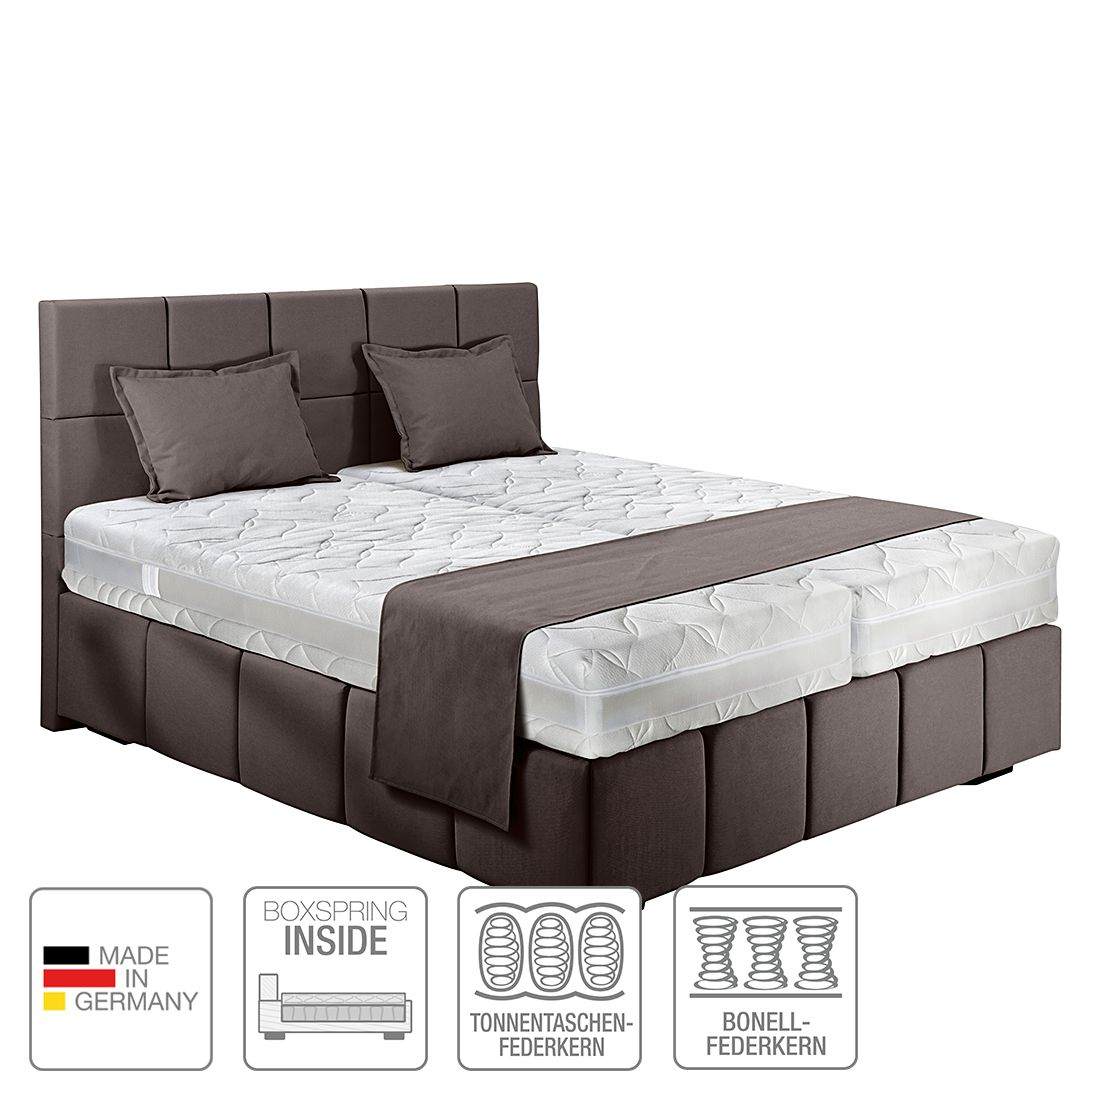 boxspring inside bett olena webstoff 160 x 200cm h3 ab 80 kg dunkelgrau nova dream. Black Bedroom Furniture Sets. Home Design Ideas